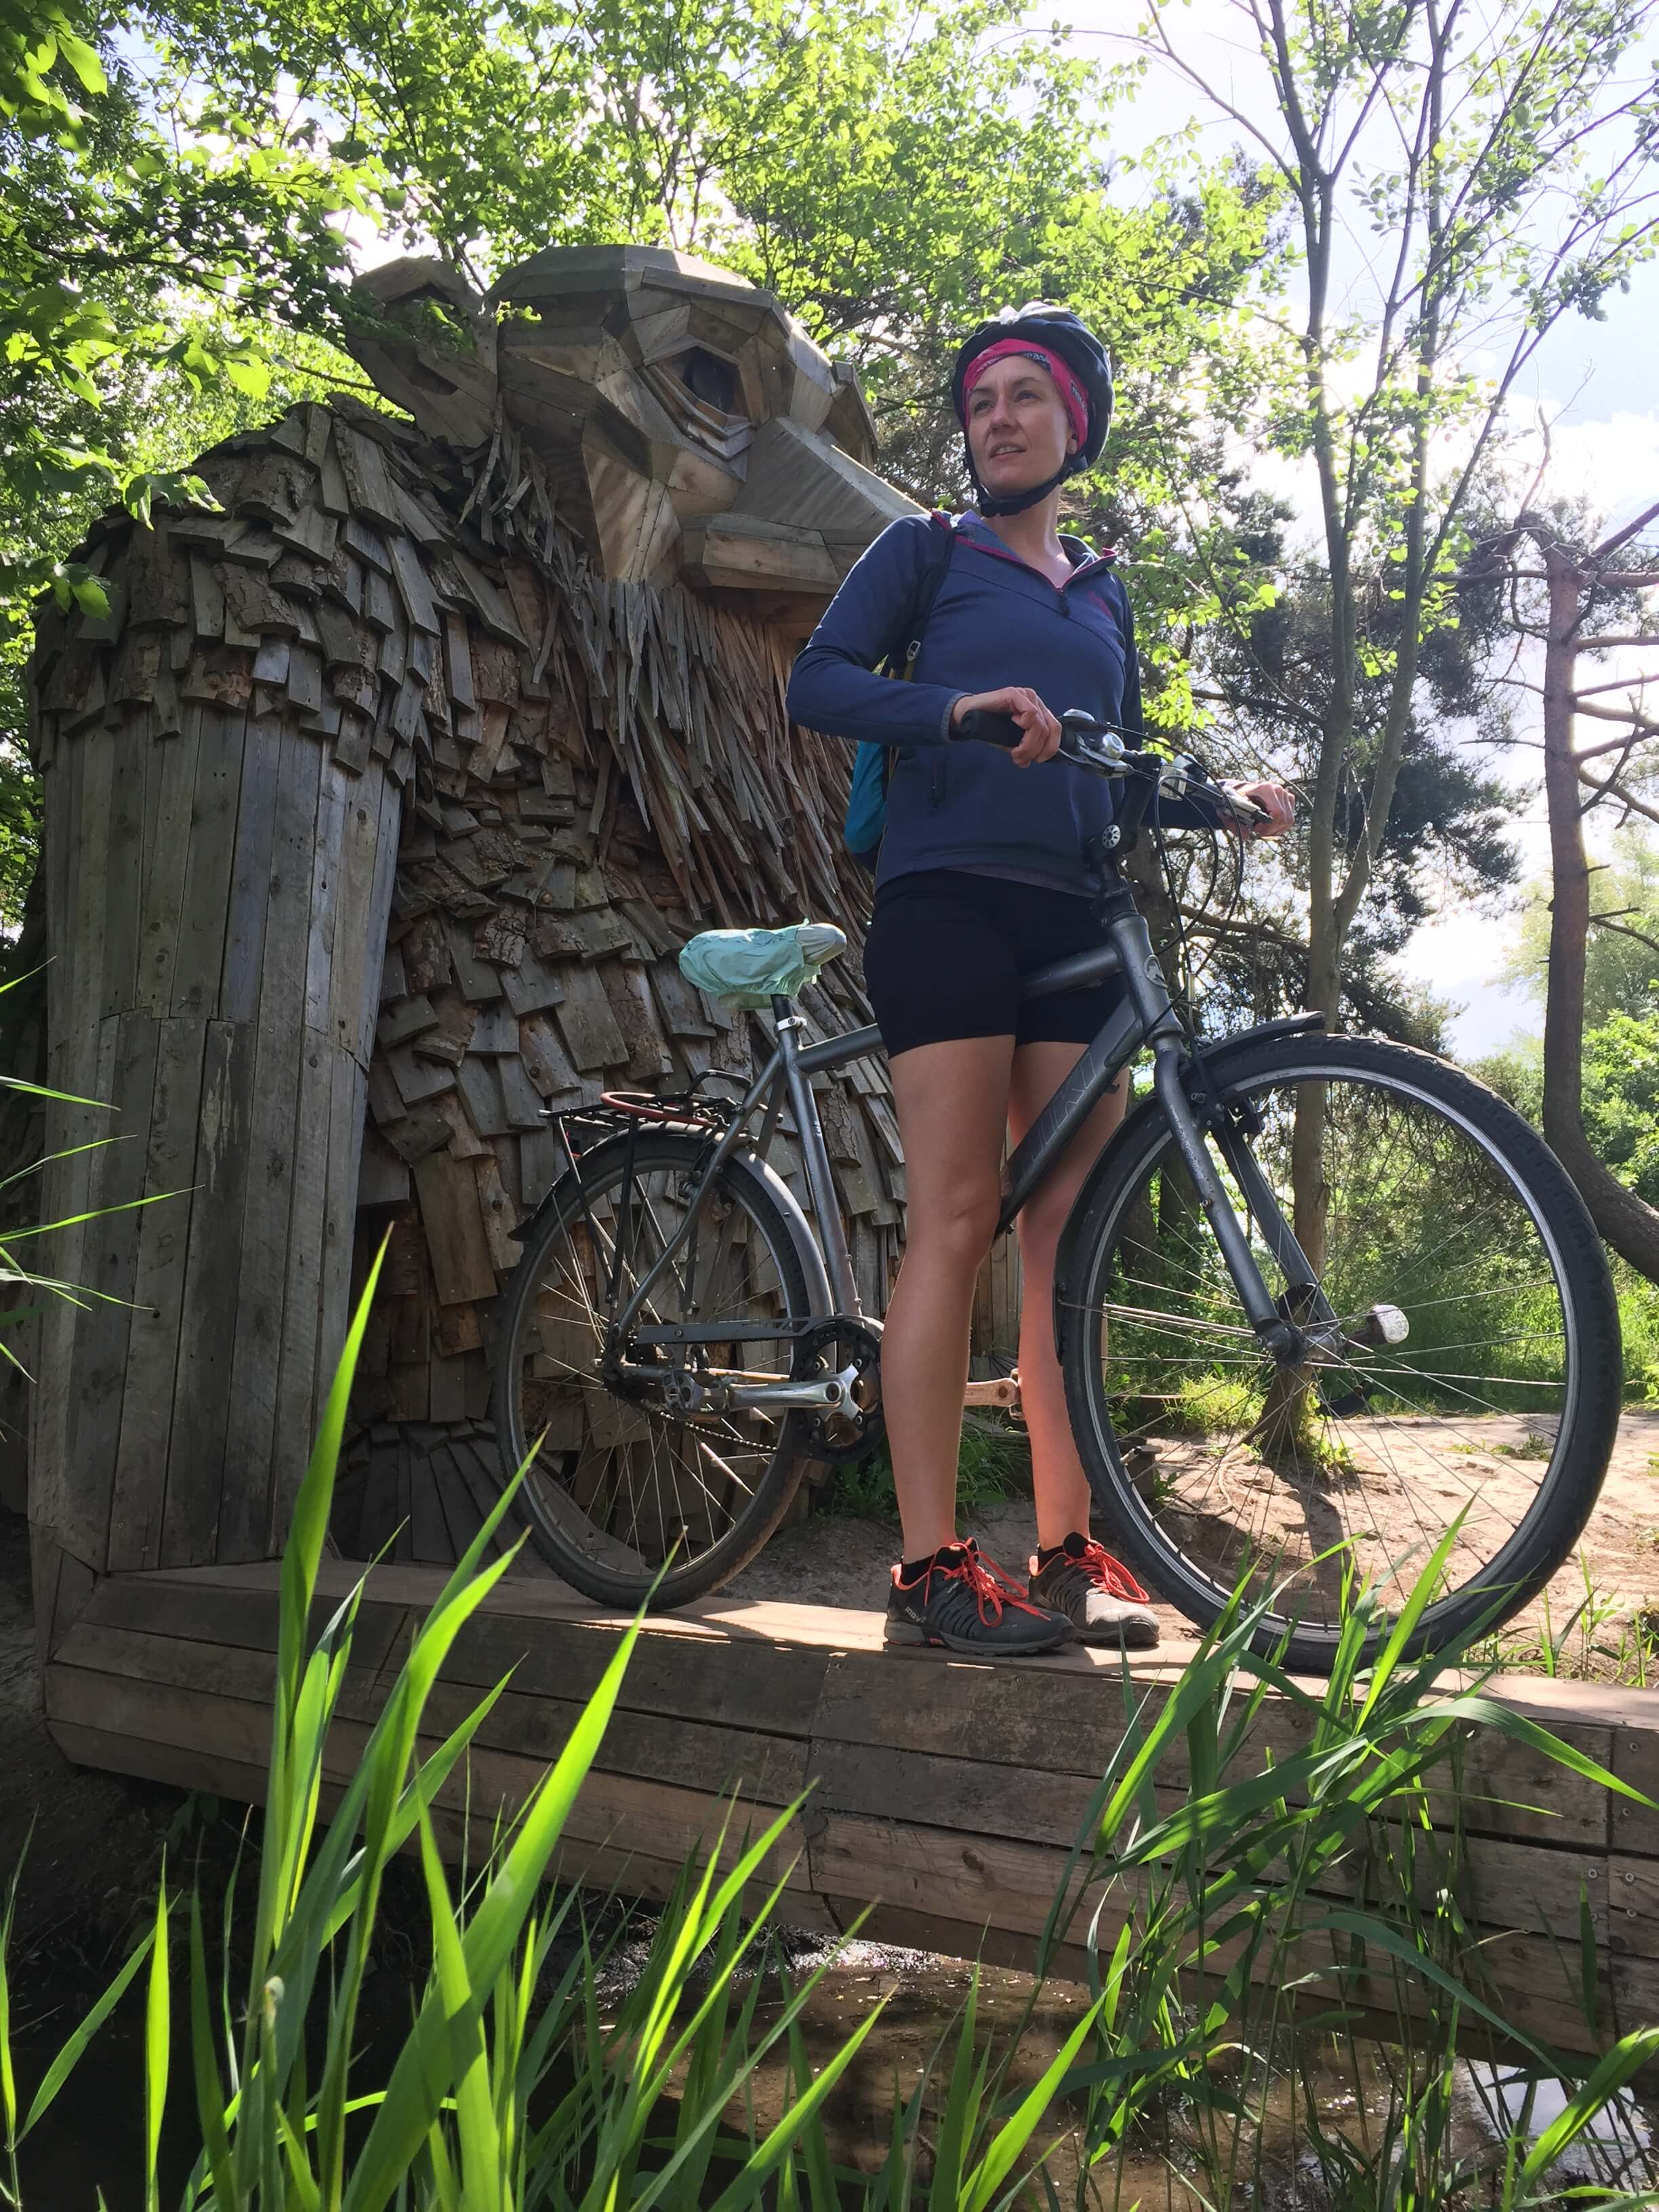 Tracy riding a bicycle in nature